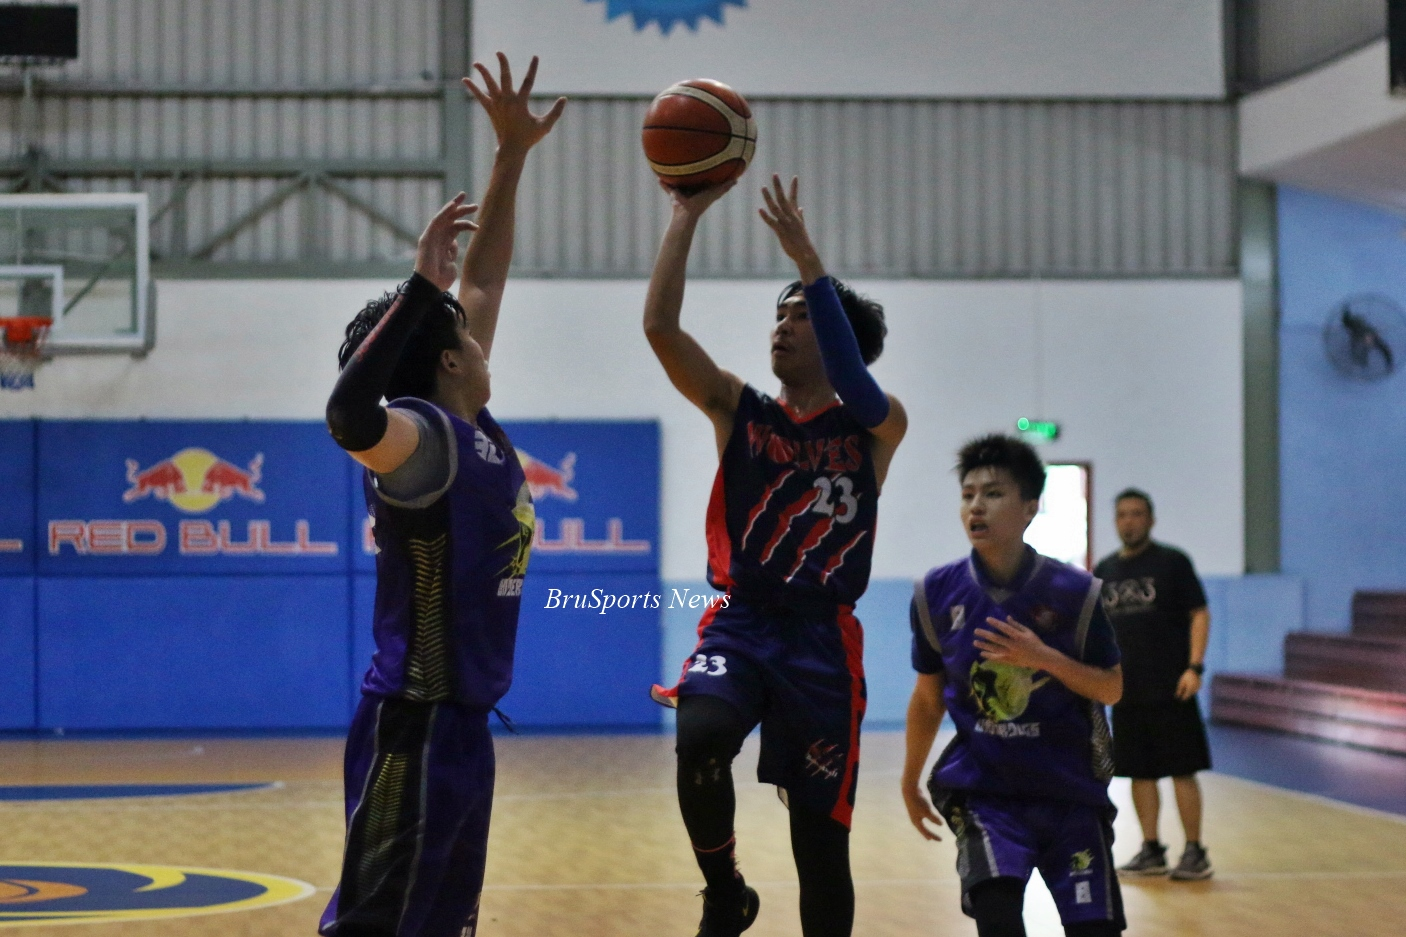 Wolves beat Underdogs, to battle Young Blood for title